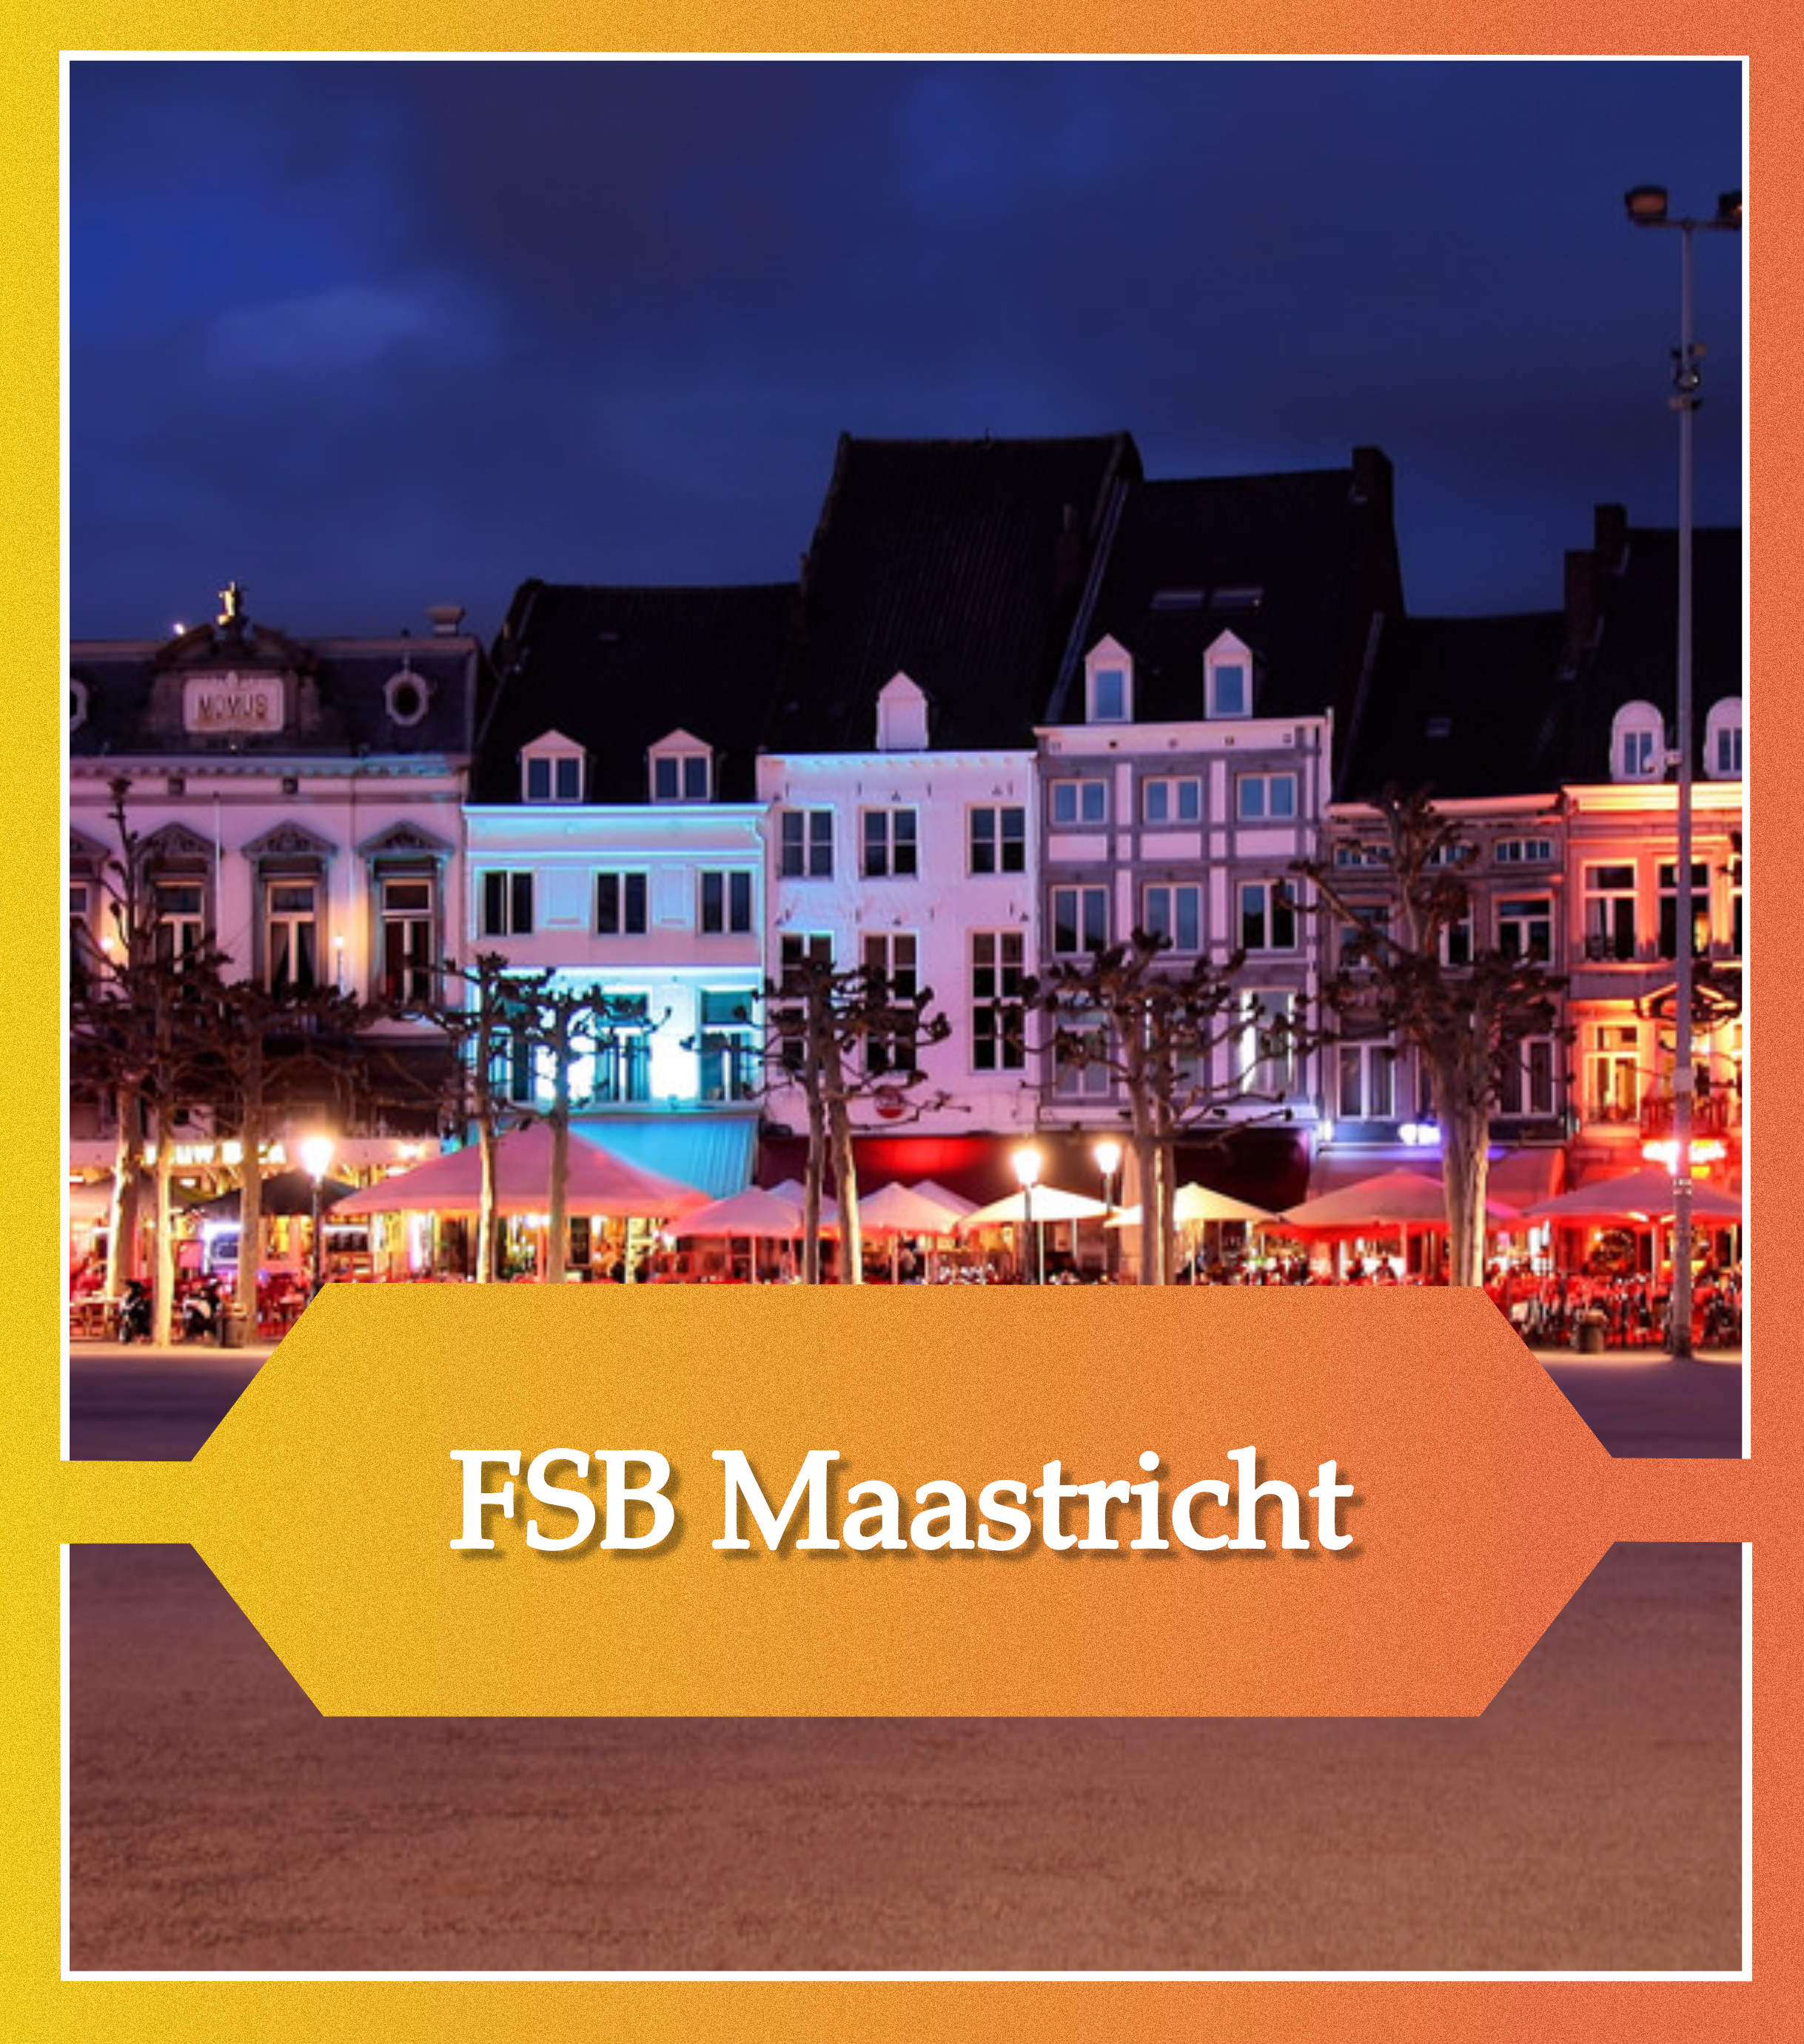 maastricht-icon.png